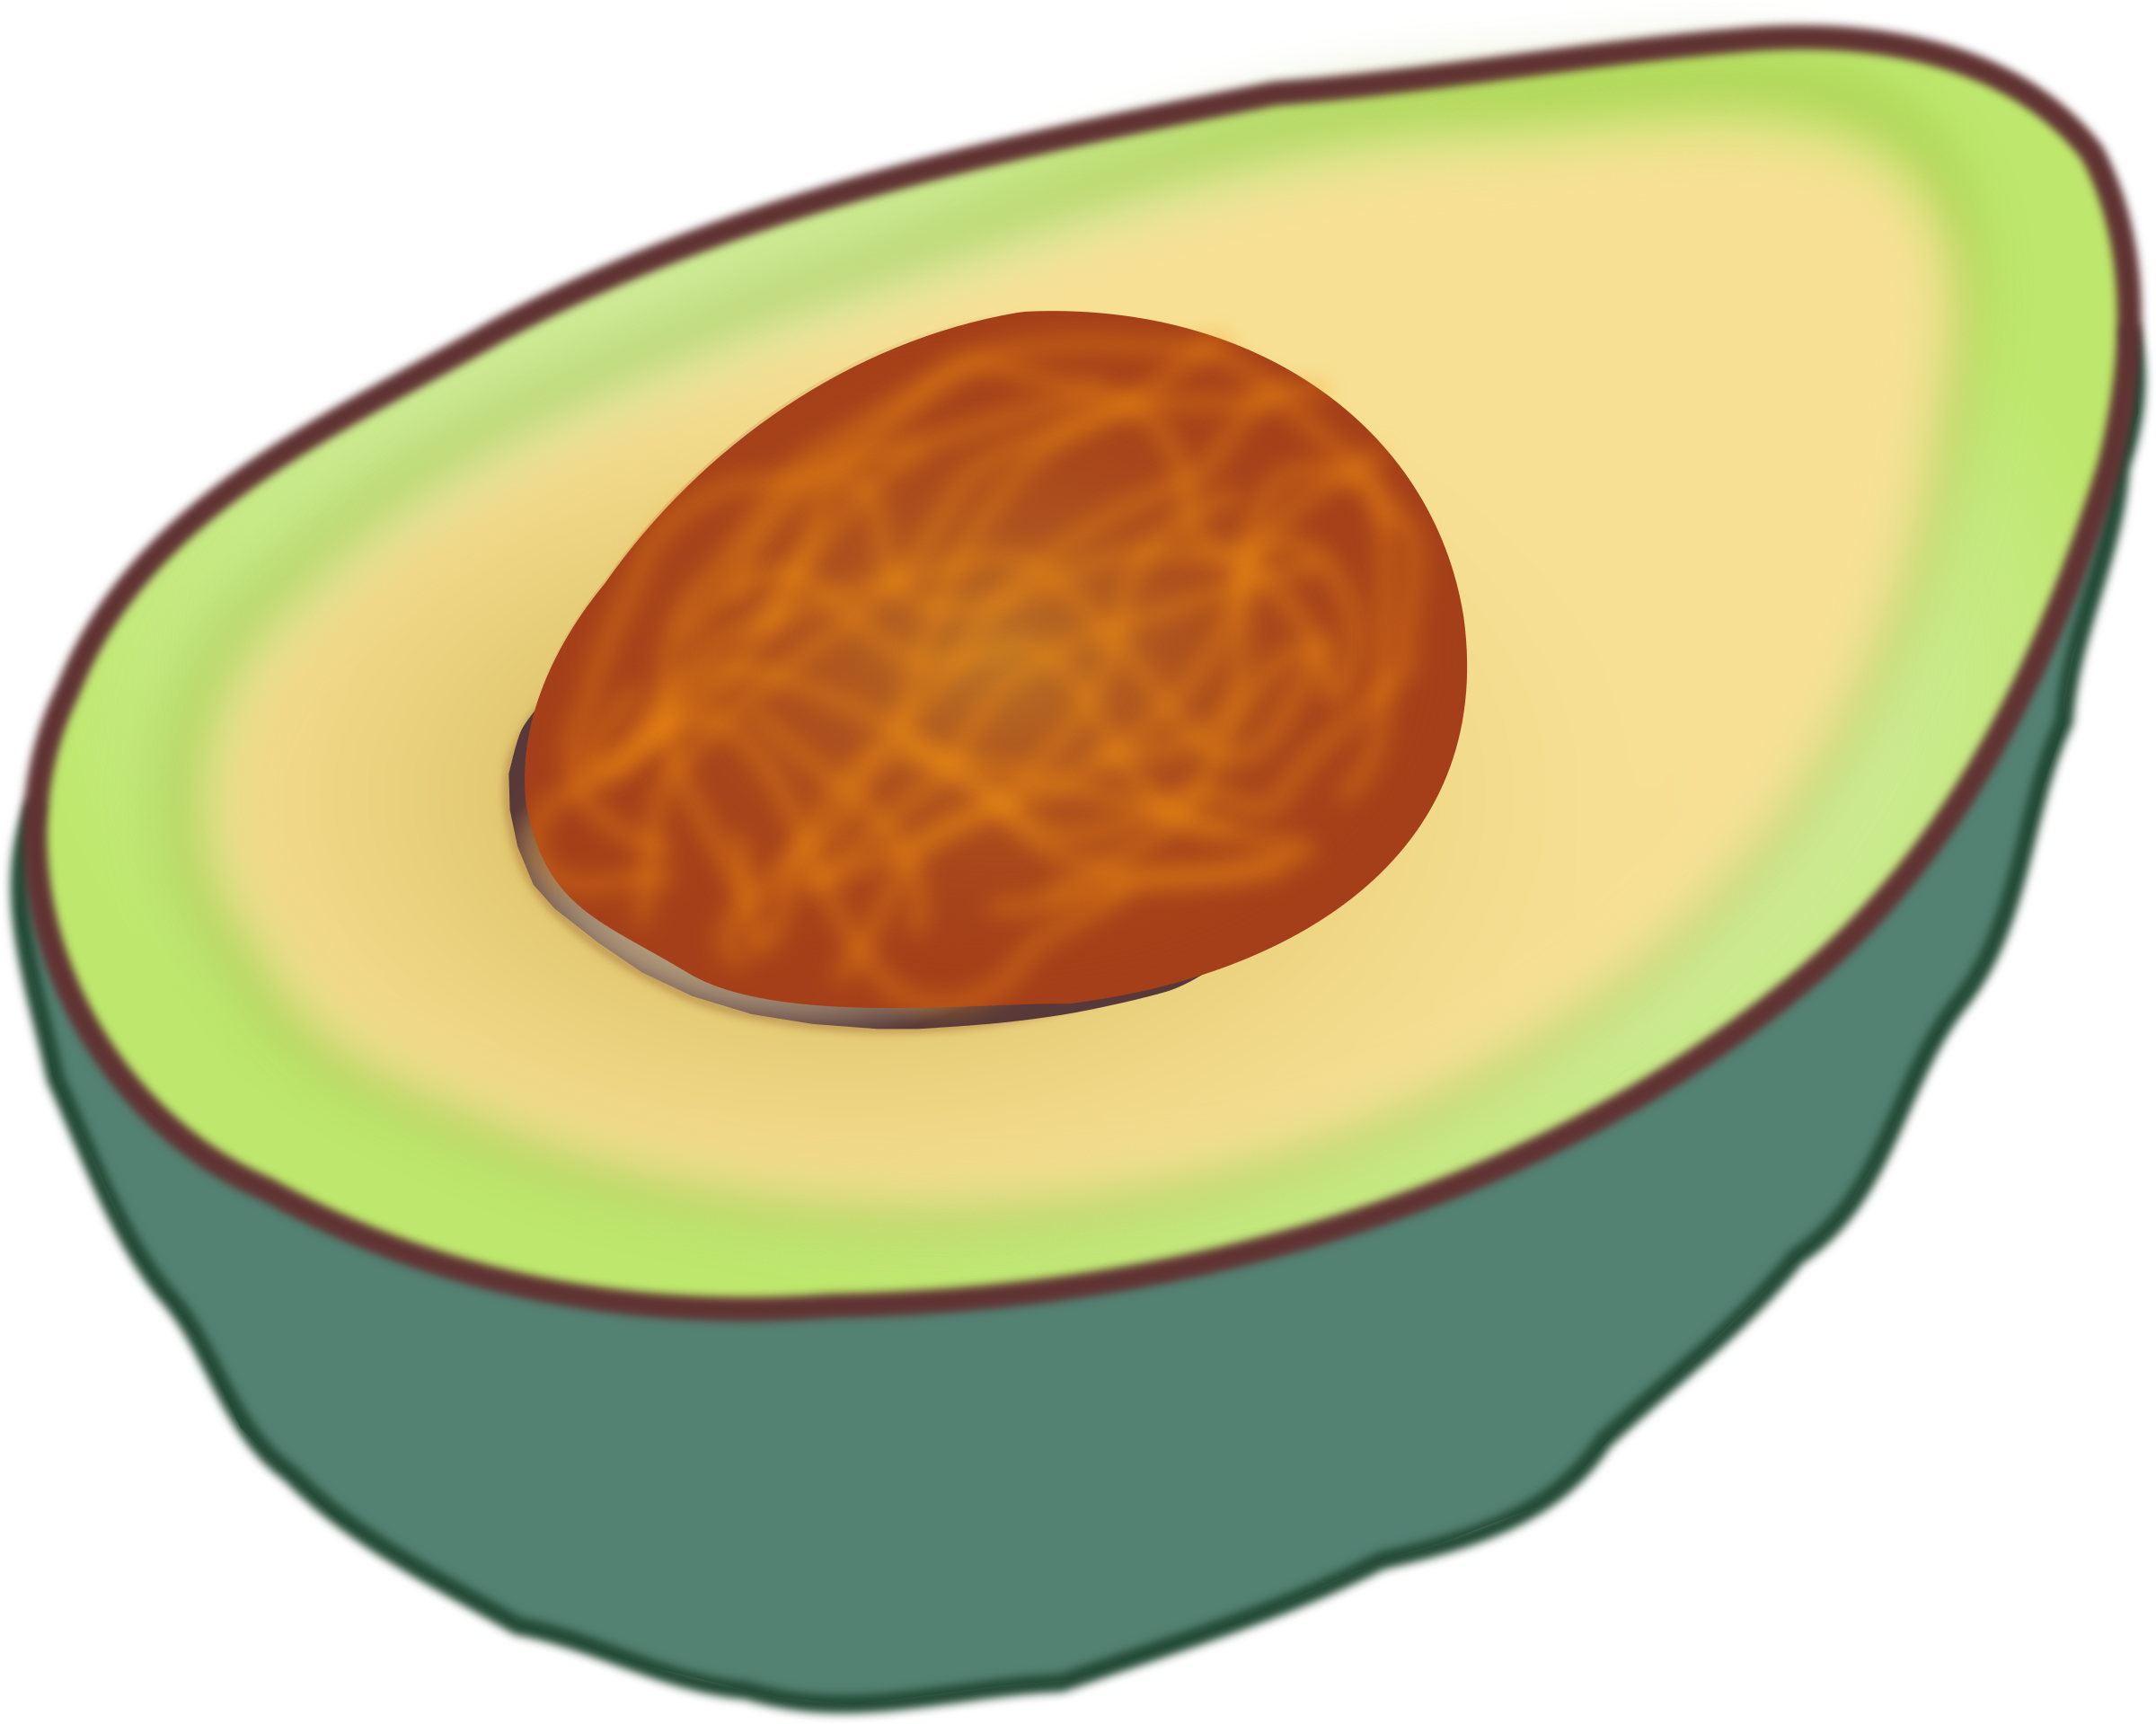 Avocado by laobc